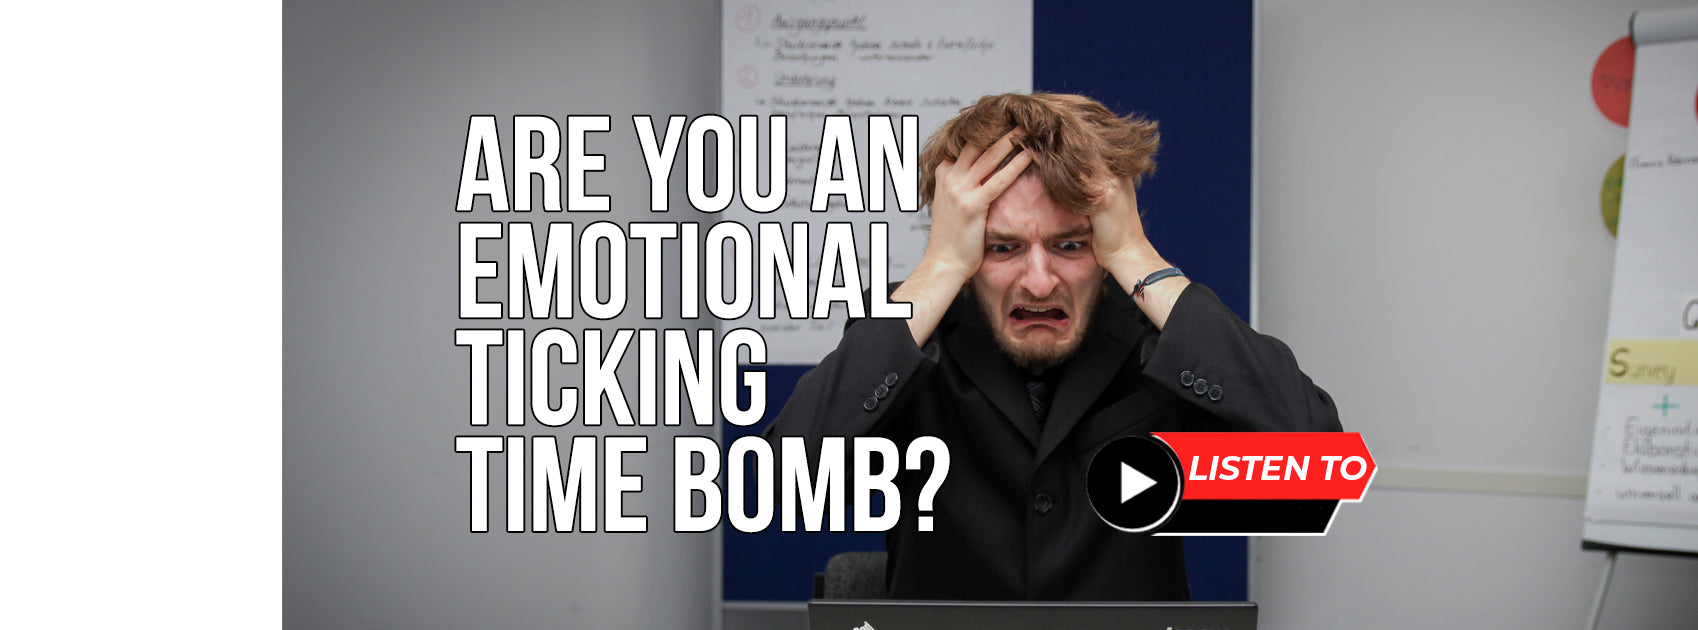 Are You An Emotional Ticking Time Bomb?